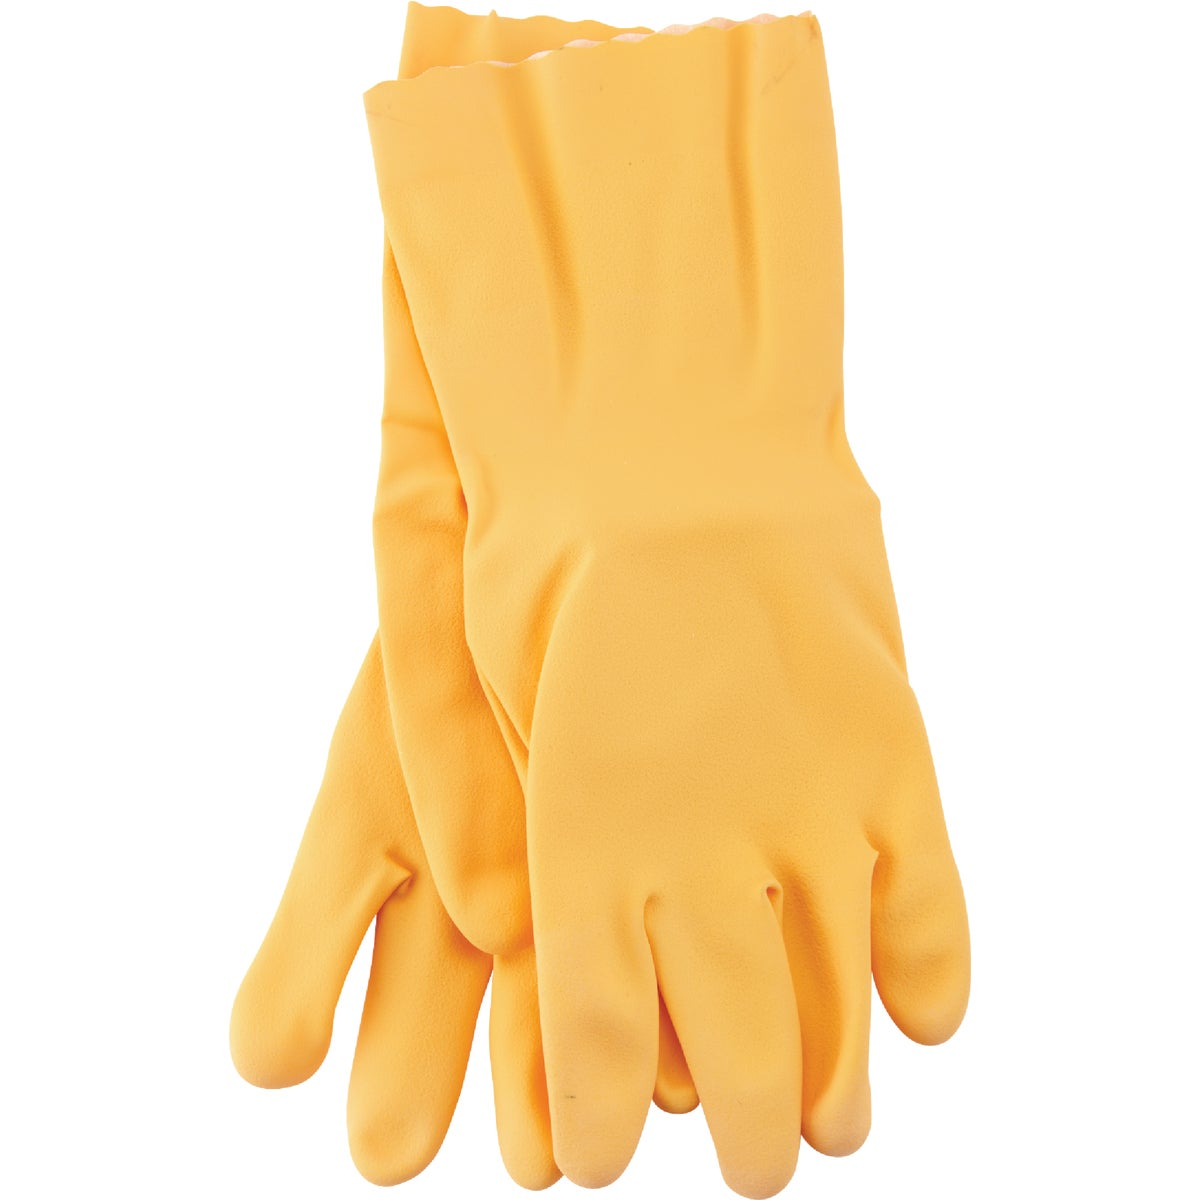 LATEX STRIPPING GLOVES - 173M by Wells Lamont